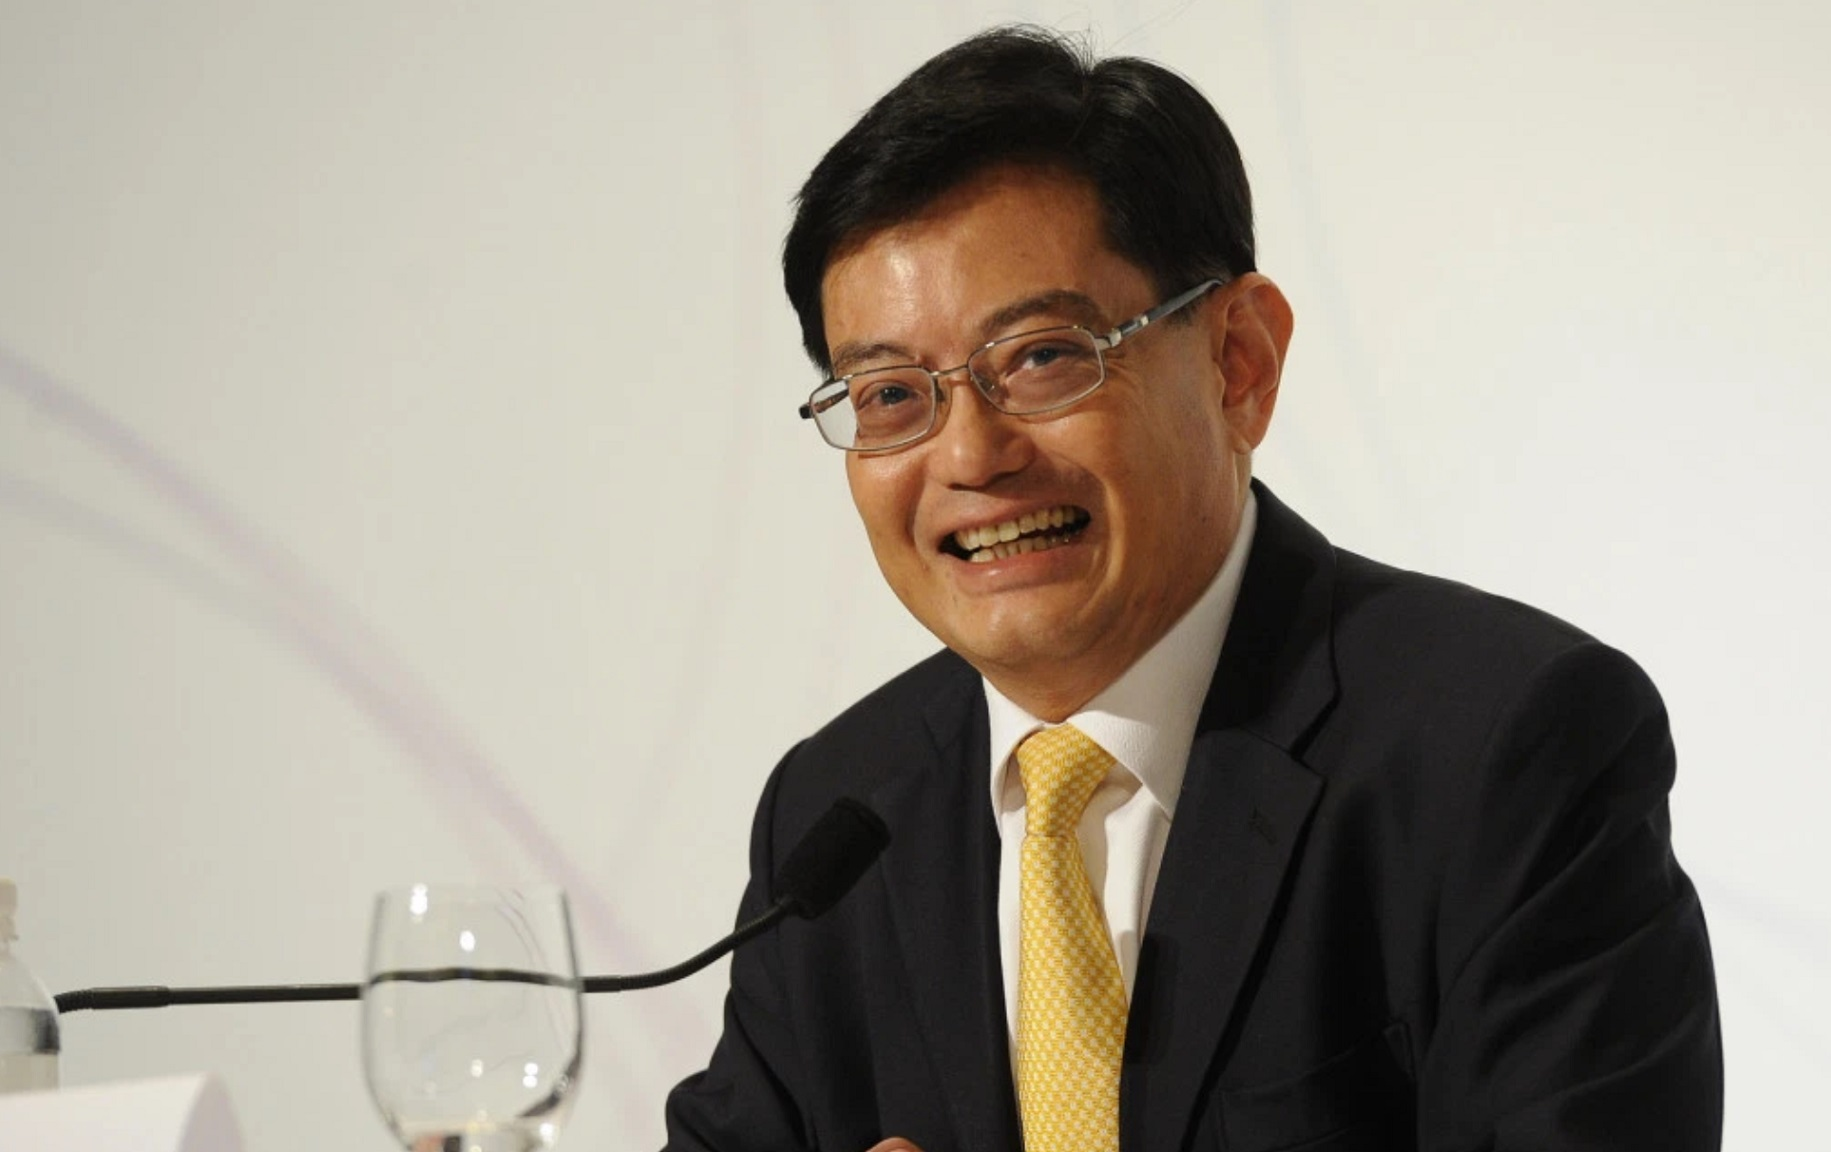 Heng Swee Keat, PM, Prime Minister, PAP. GST, MOF